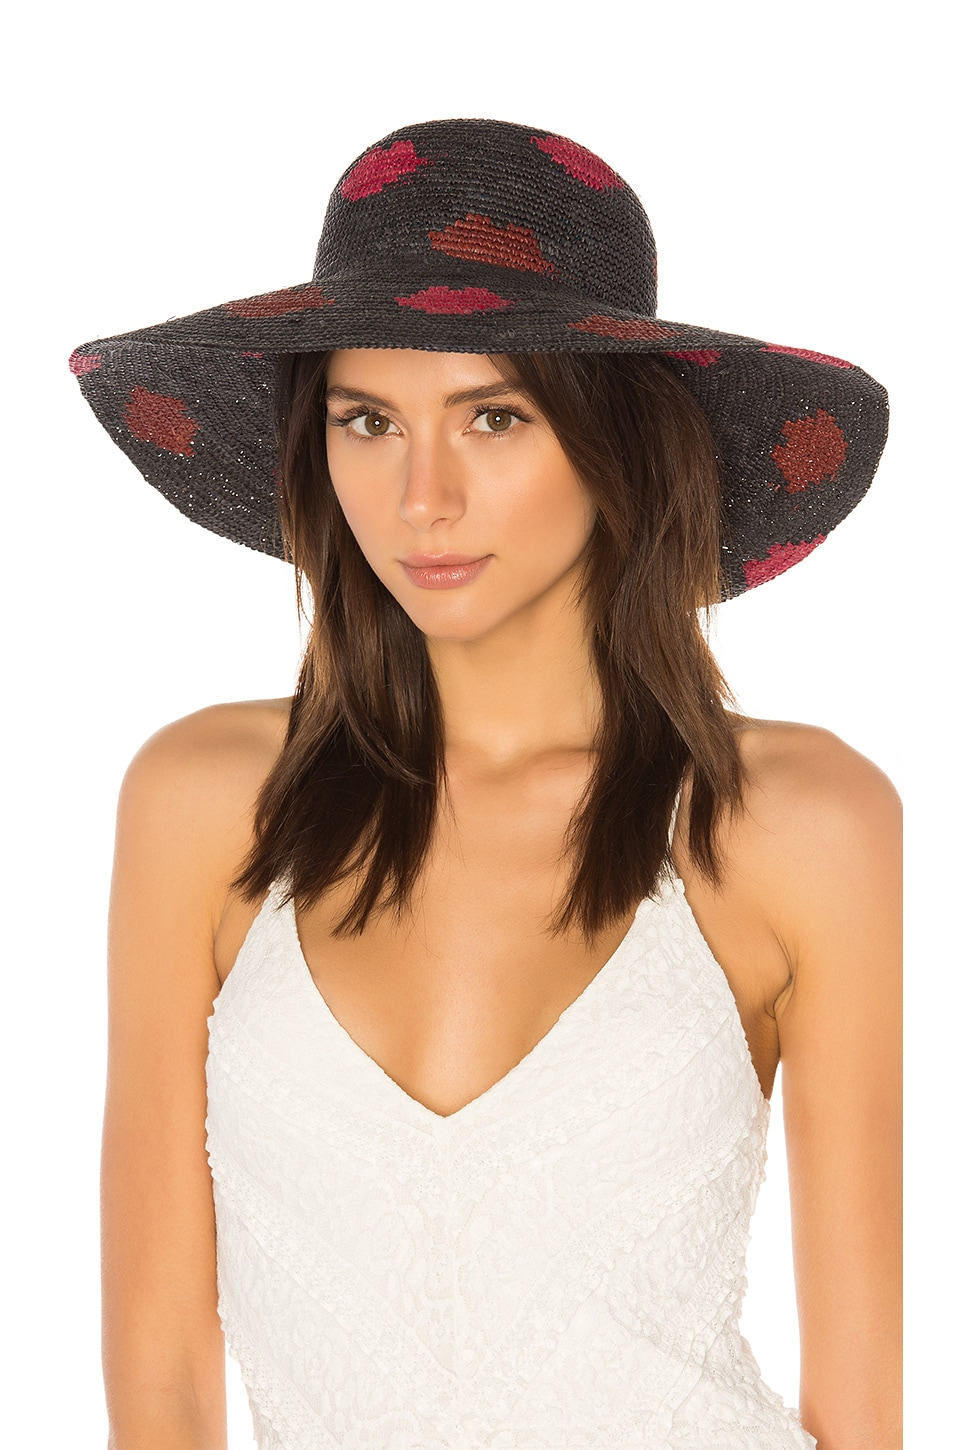 YESTADT MILLINERY KISSES PACKABLE STRAW SUN HAT